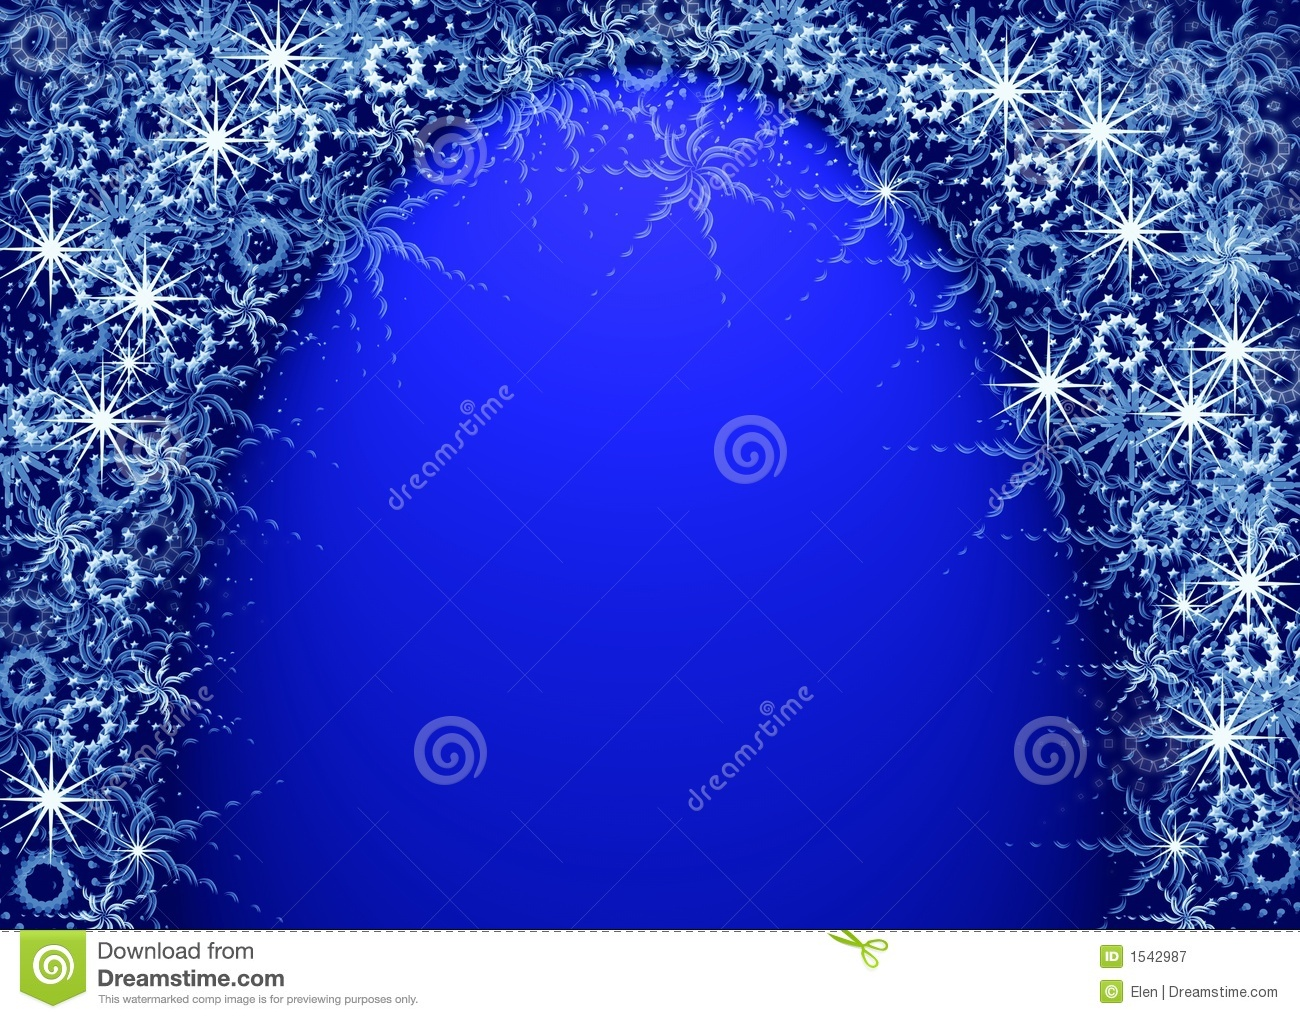 Christmas blue magic frame stock illustration. Illustration of ...